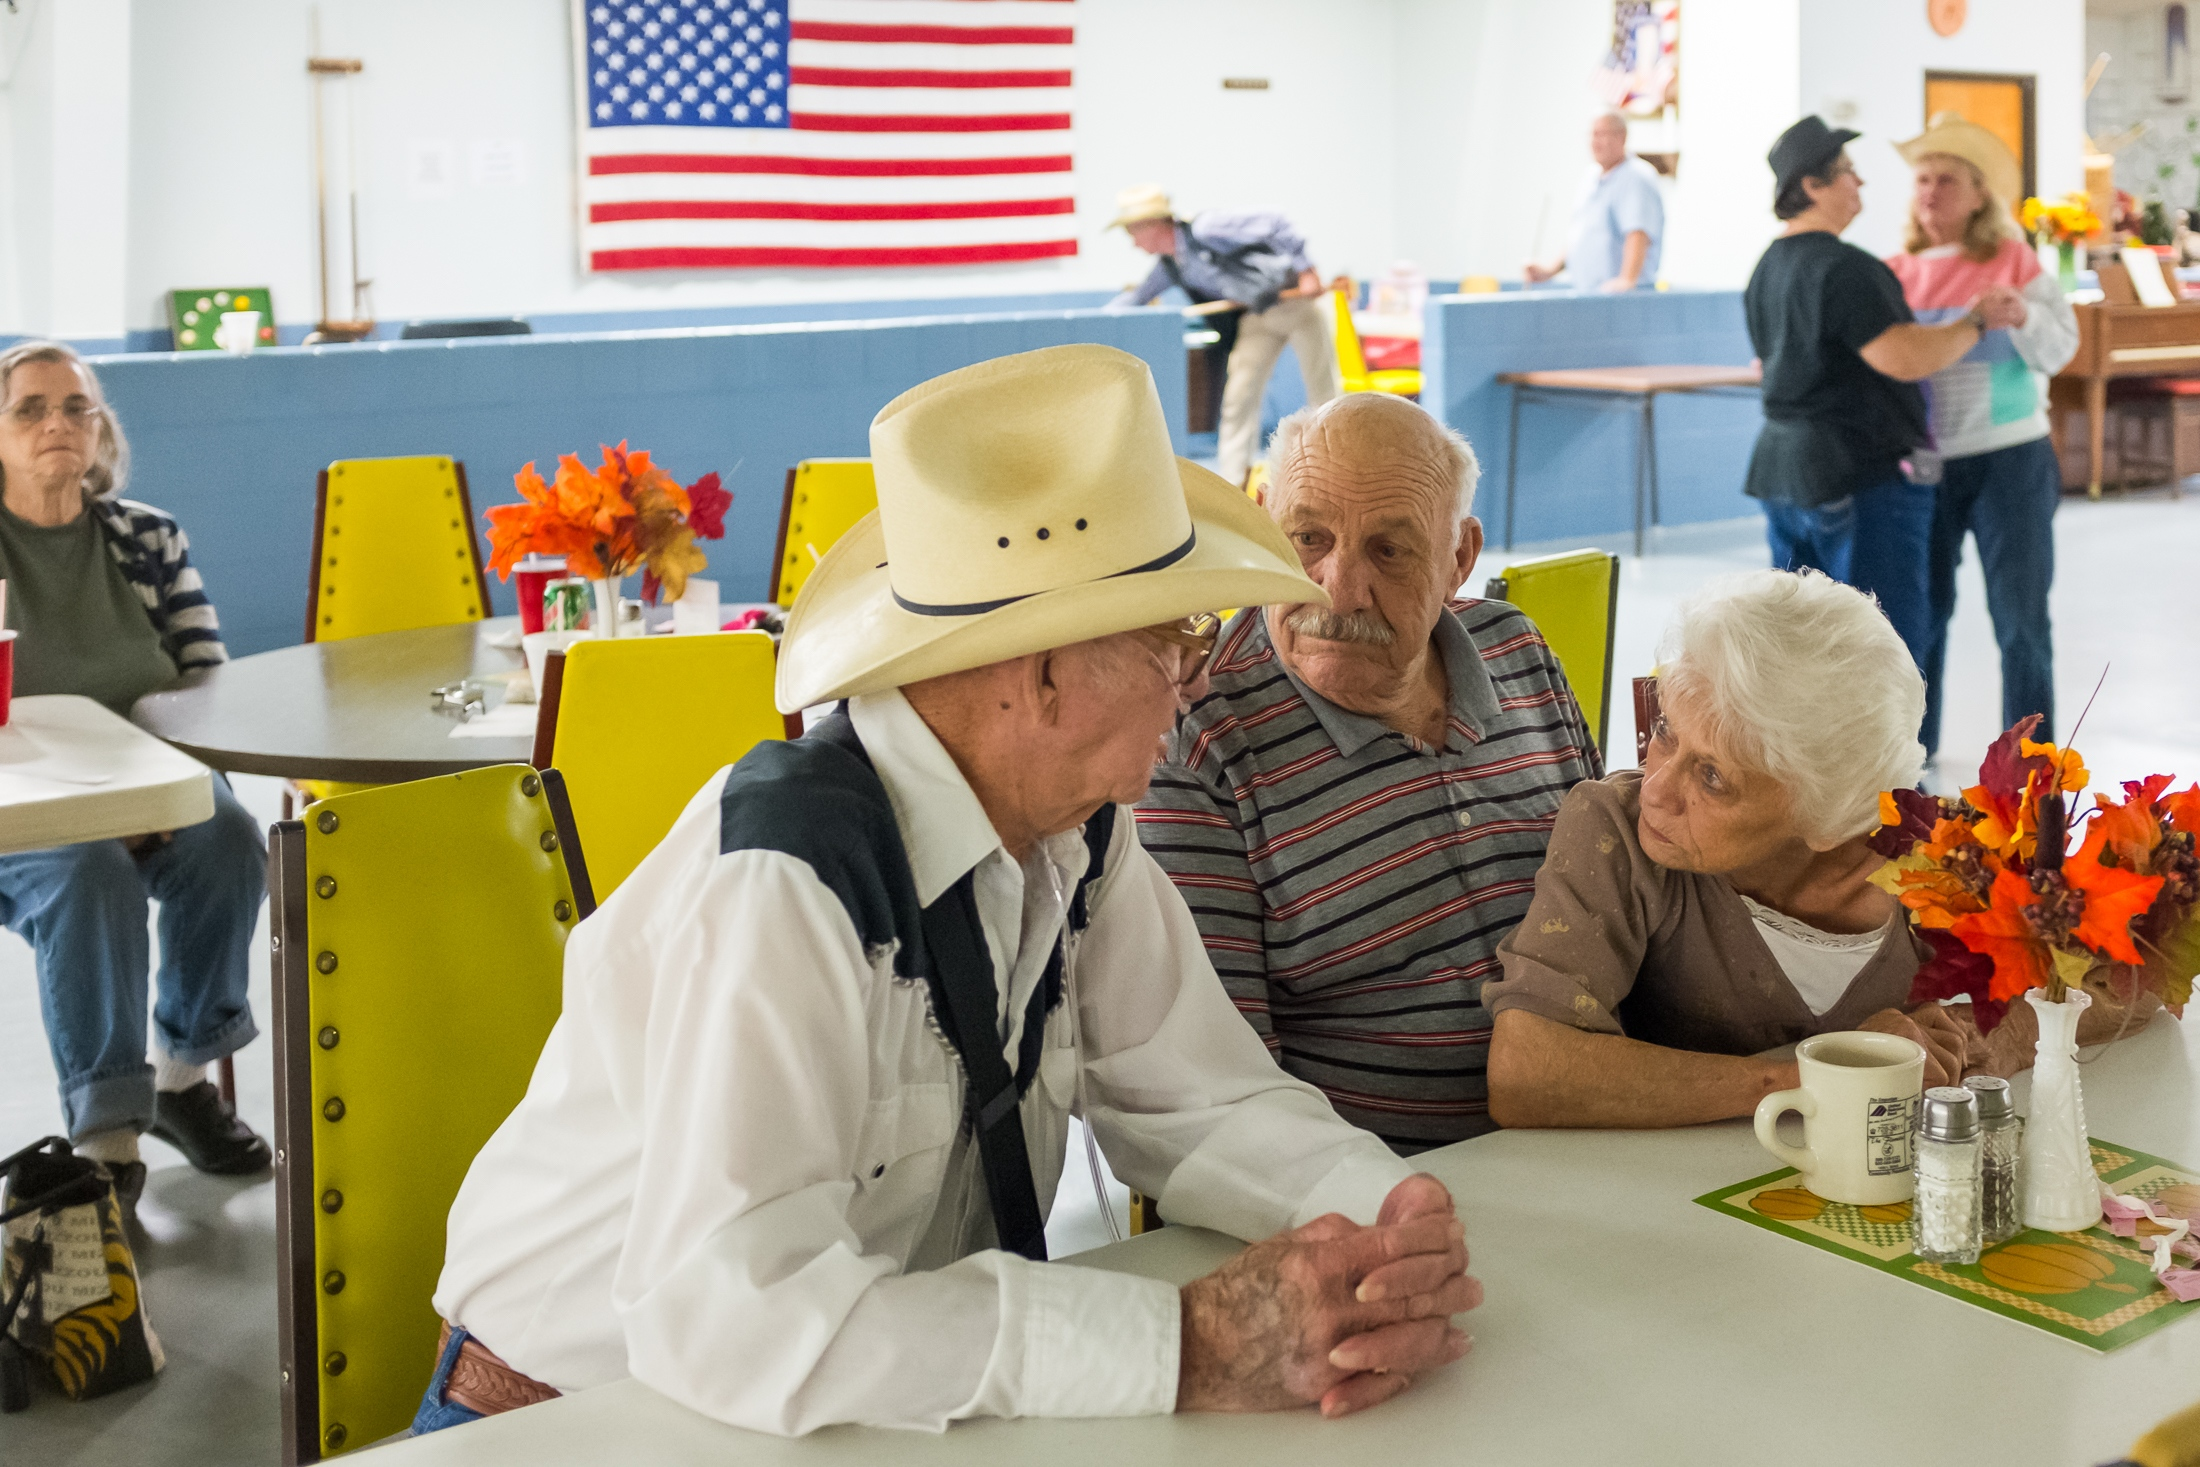 Jay enjoys a conversation with his friends during his regular visit to the Trenton Senior Center.